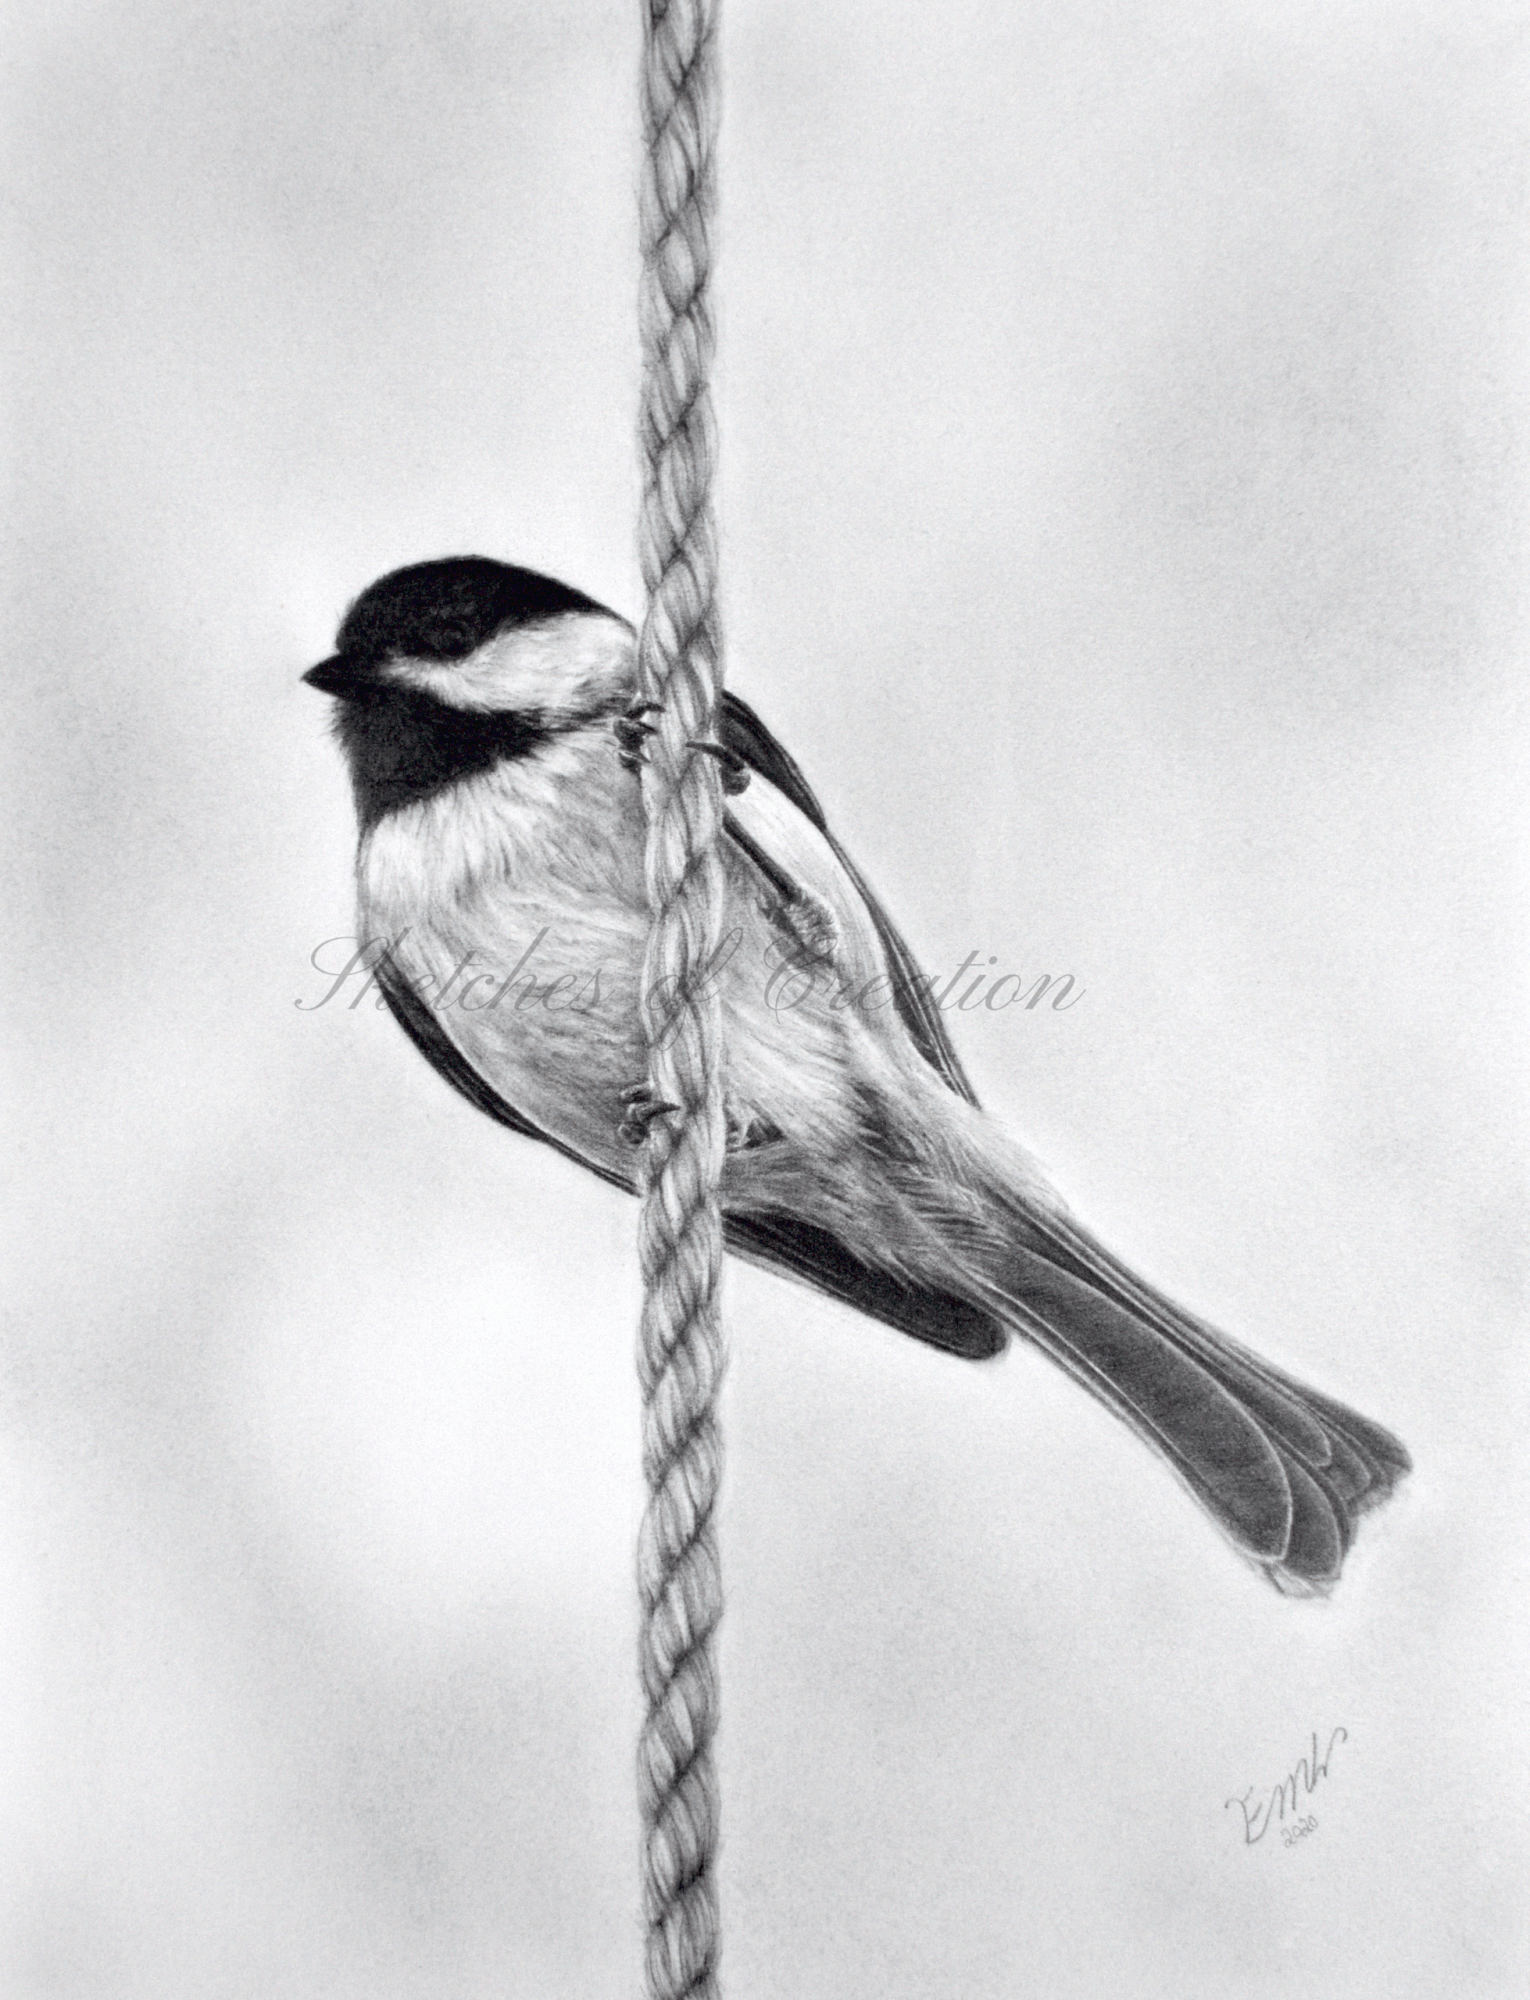 'Lookout' a drawing of a chickadee on a rope. 6x8 inches. Completed November 2020